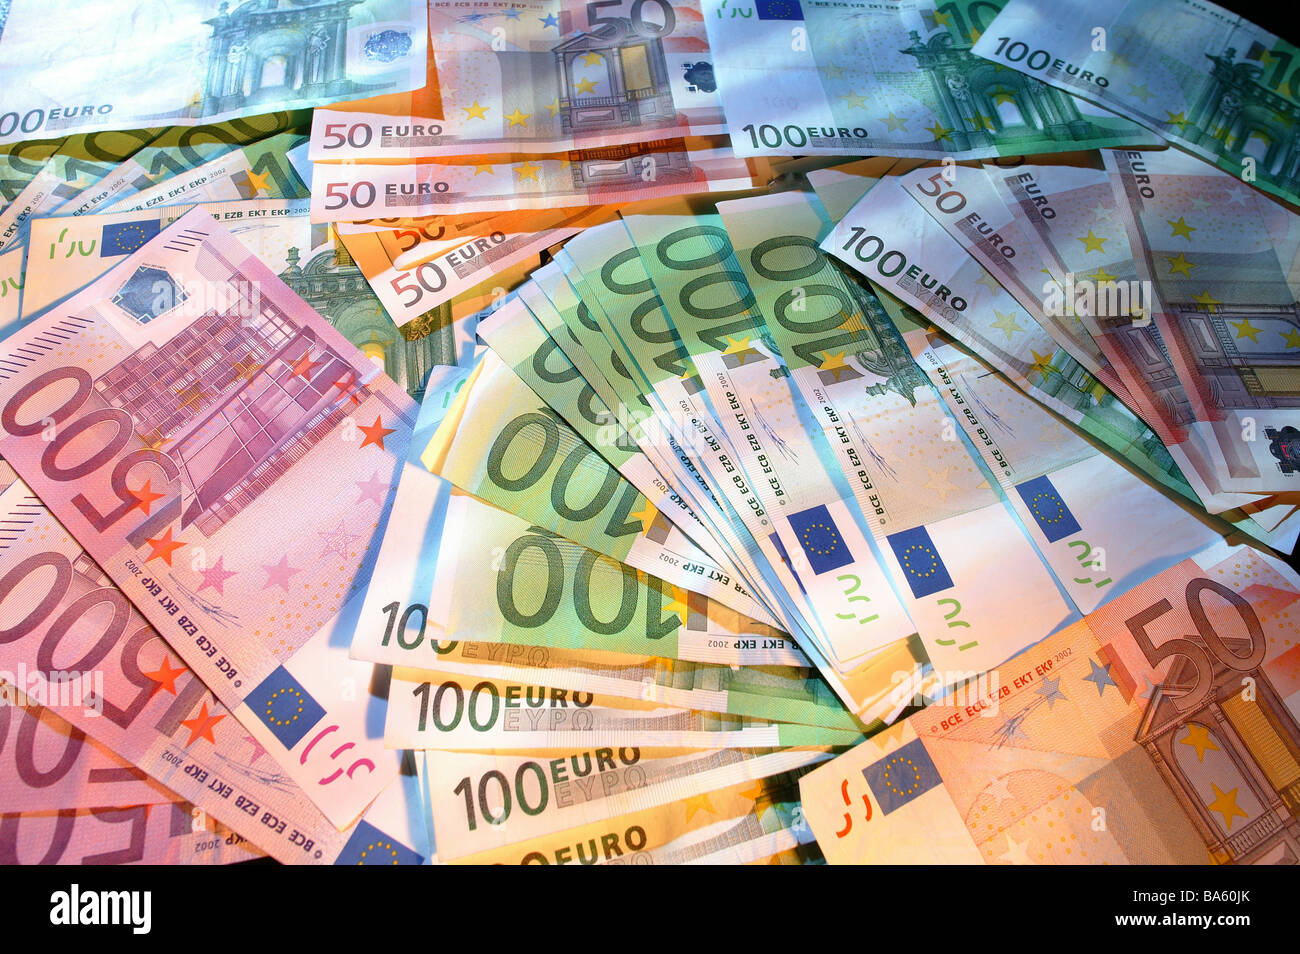 Money Bills Euro Bills Euros Currency Differently Value Many Symbol